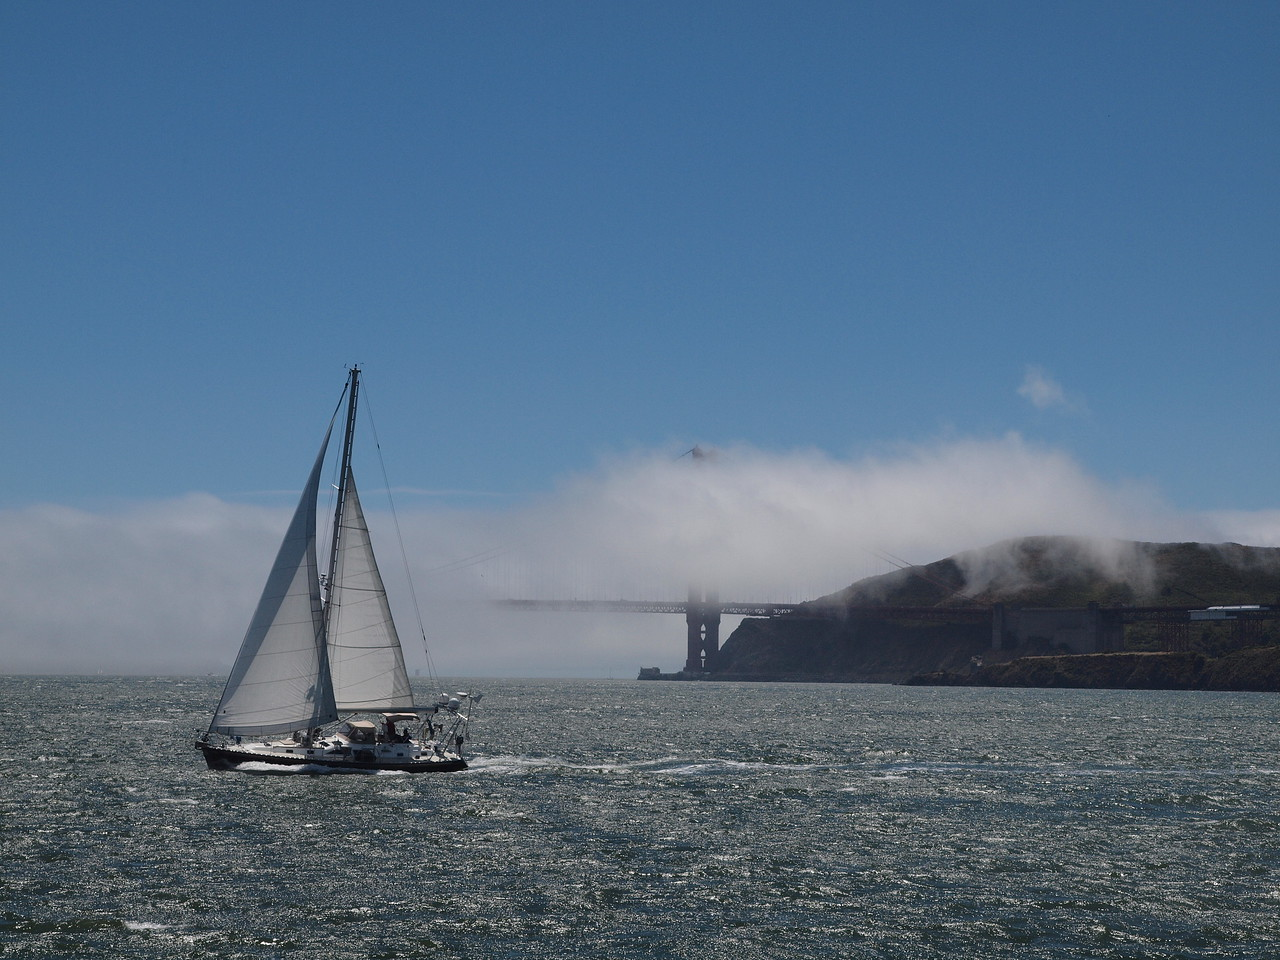 Sail boat and Golden Gate Bridge in the fog.